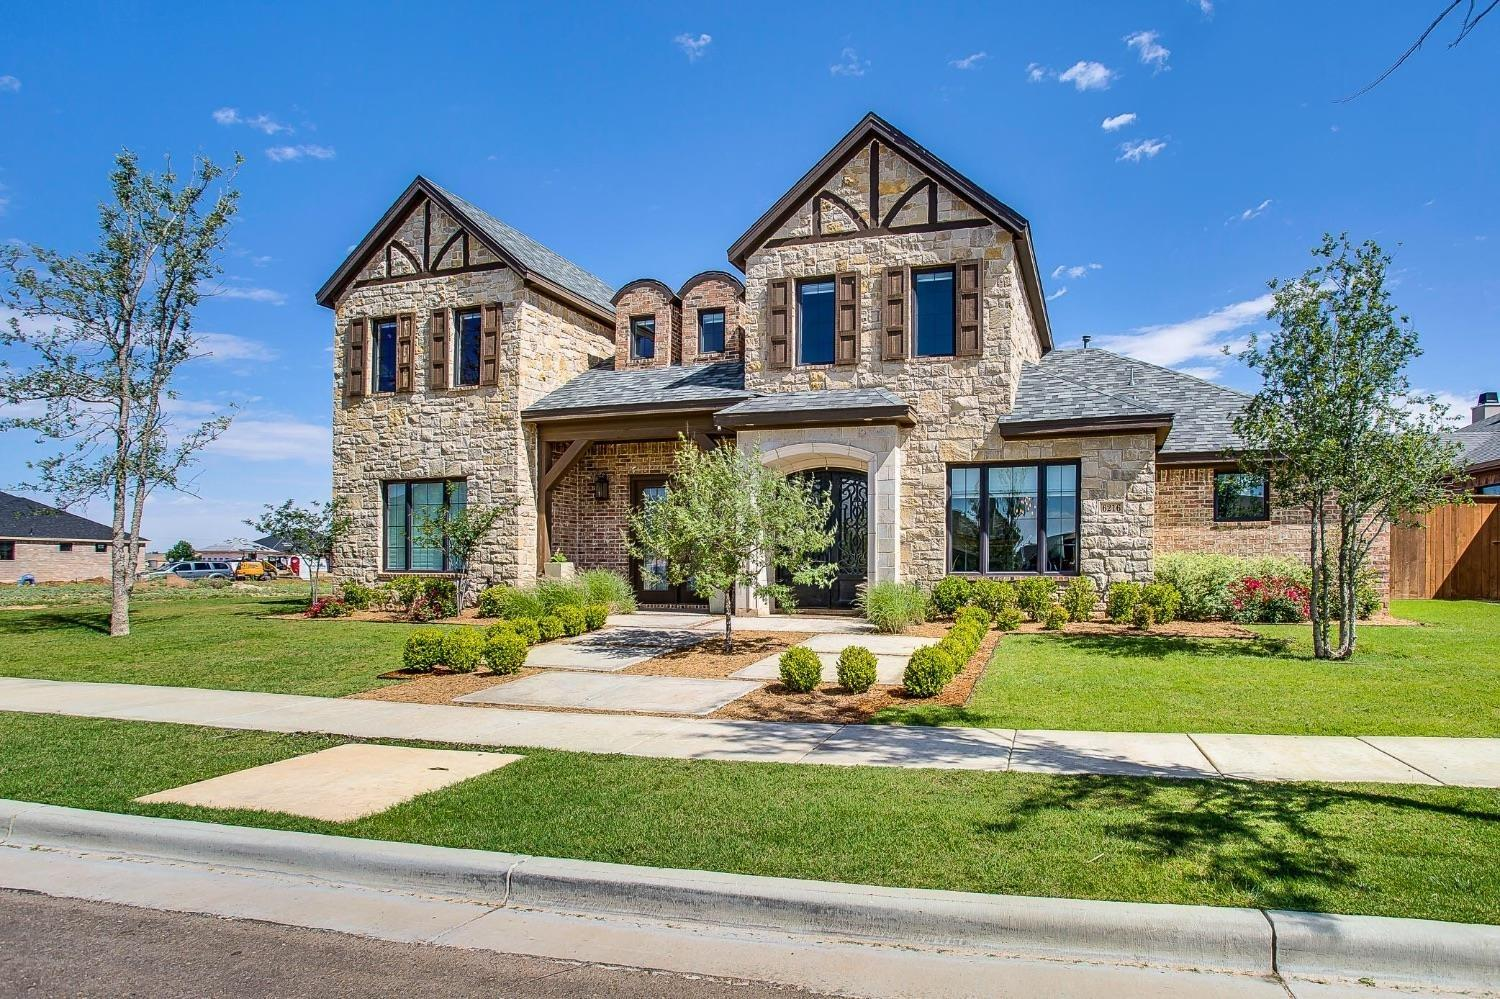 This stunning home in The Trails at Regal Park won Best Interior as a Parade Home in 2016. Beautiful curb appeal as you walk up to this brick and stone home with gorgeous cedar accents. Walk in to an open concept floor plan with light oak hardwood floors. The perfect amount of rustic touches throughout including repurposed barn wood used for the ceiling and an accent wall. The open living and kitchen area has beautiful natural  light with sliding doors that lead into this fabulous backyard. The oversized island makes the perfect gathering place. This home has all the space you need for a family with four bedrooms, three bathrooms, a formal dining room, study, and an upstairs bonus area that would make a great game or play room. Complete with a mud room, safe room, bug covered patio with built-in grill, garden area in corner or yard, and lots of entertaining space! Welcome home!!